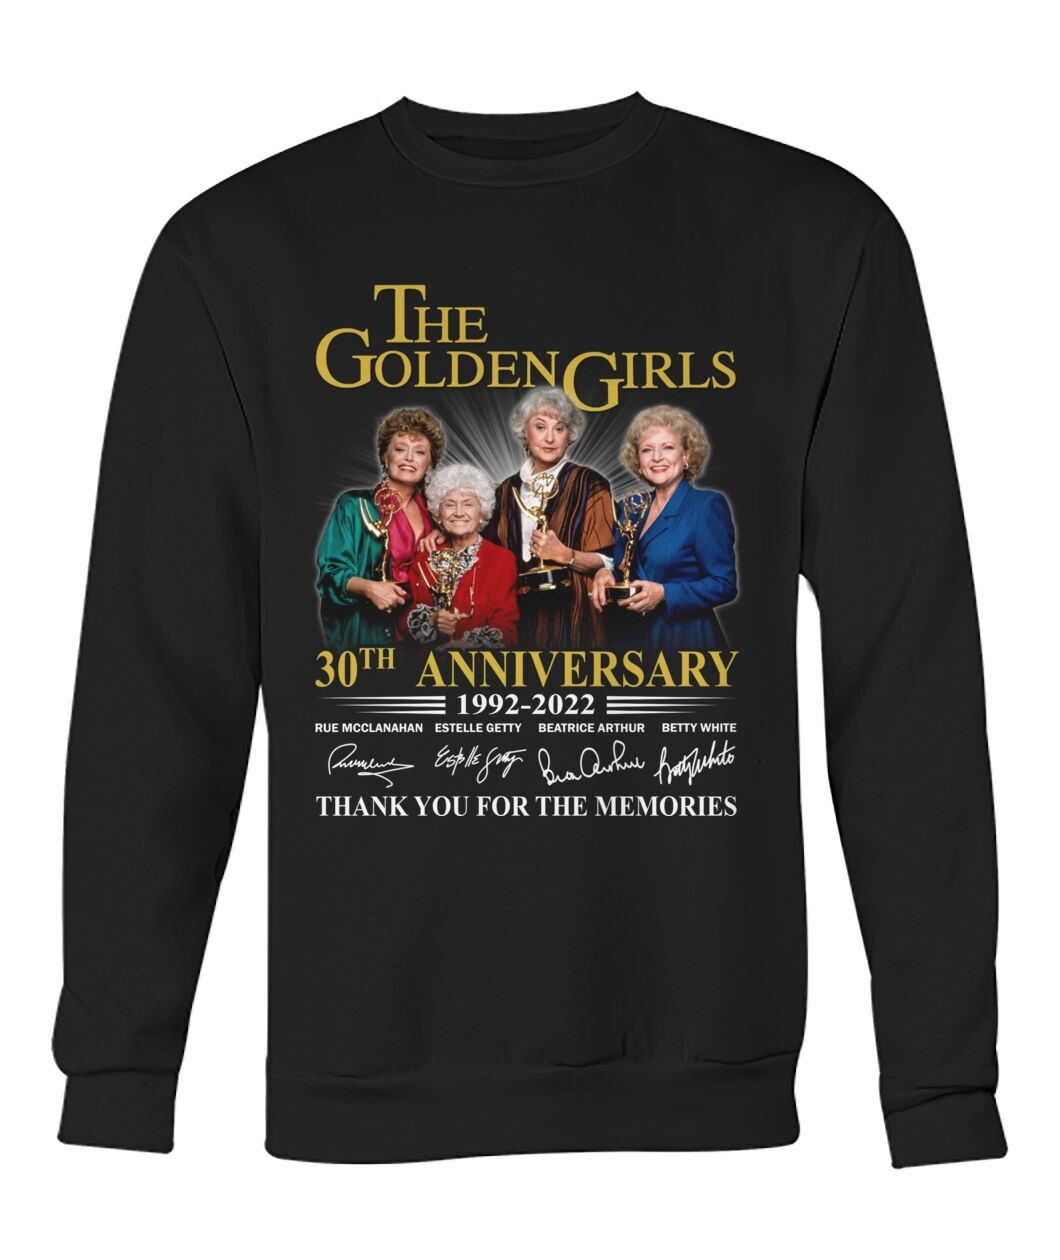 The golden girls 30th anniversary 1992 2022 thank you for the memories sweatshirt